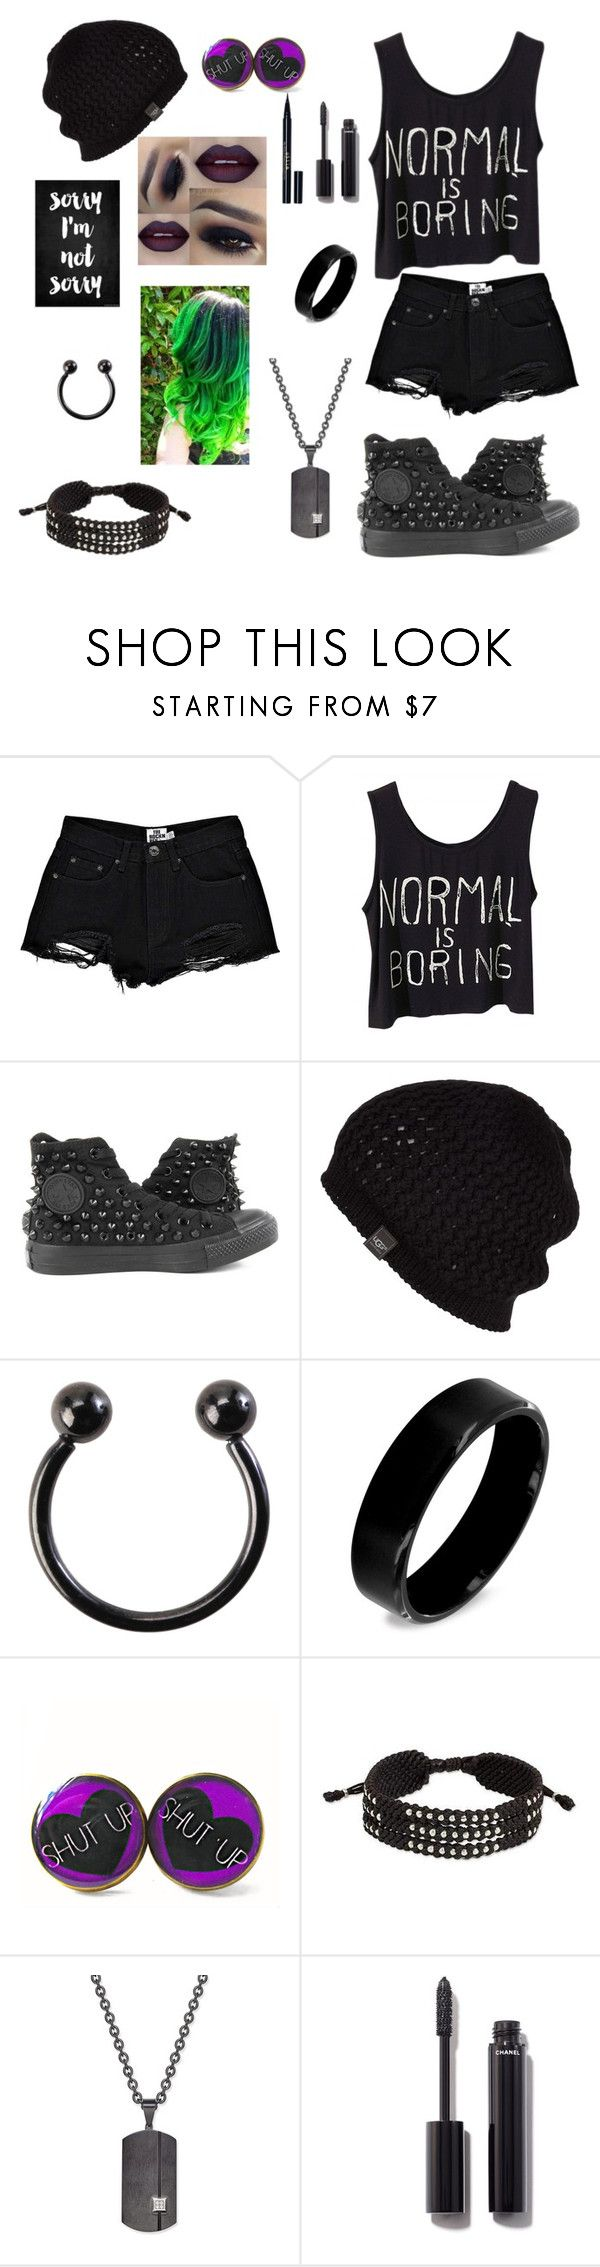 """Weird and Proud"" by beckybesel ❤ liked on Polyvore featuring Boohoo, Converse, UGG Australia, Hot Topic, West Coast Jewelry, NOVICA, Rhona Sutton, Chanel and Stila"